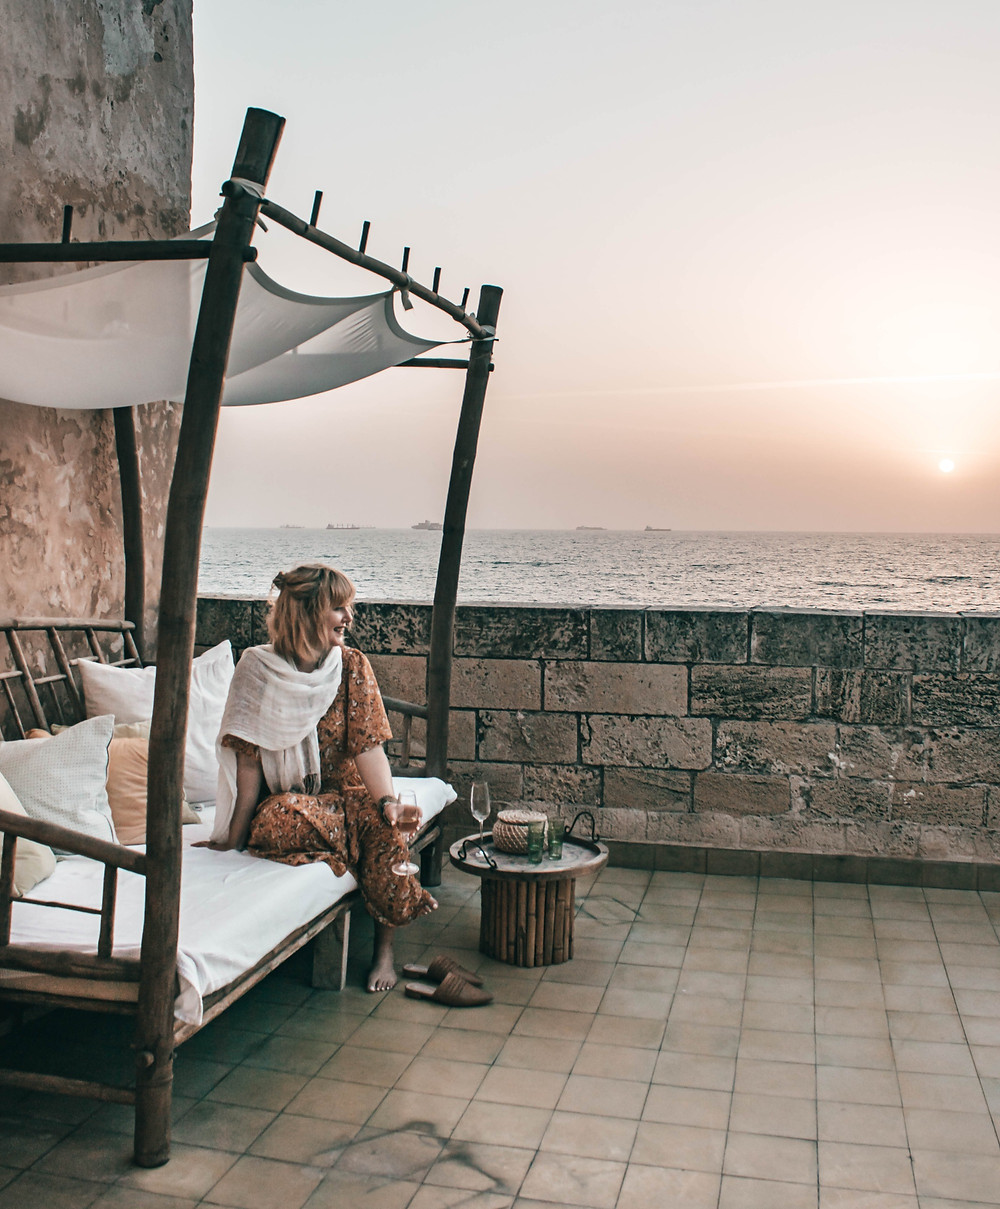 Best places to stay in Akko, Israel